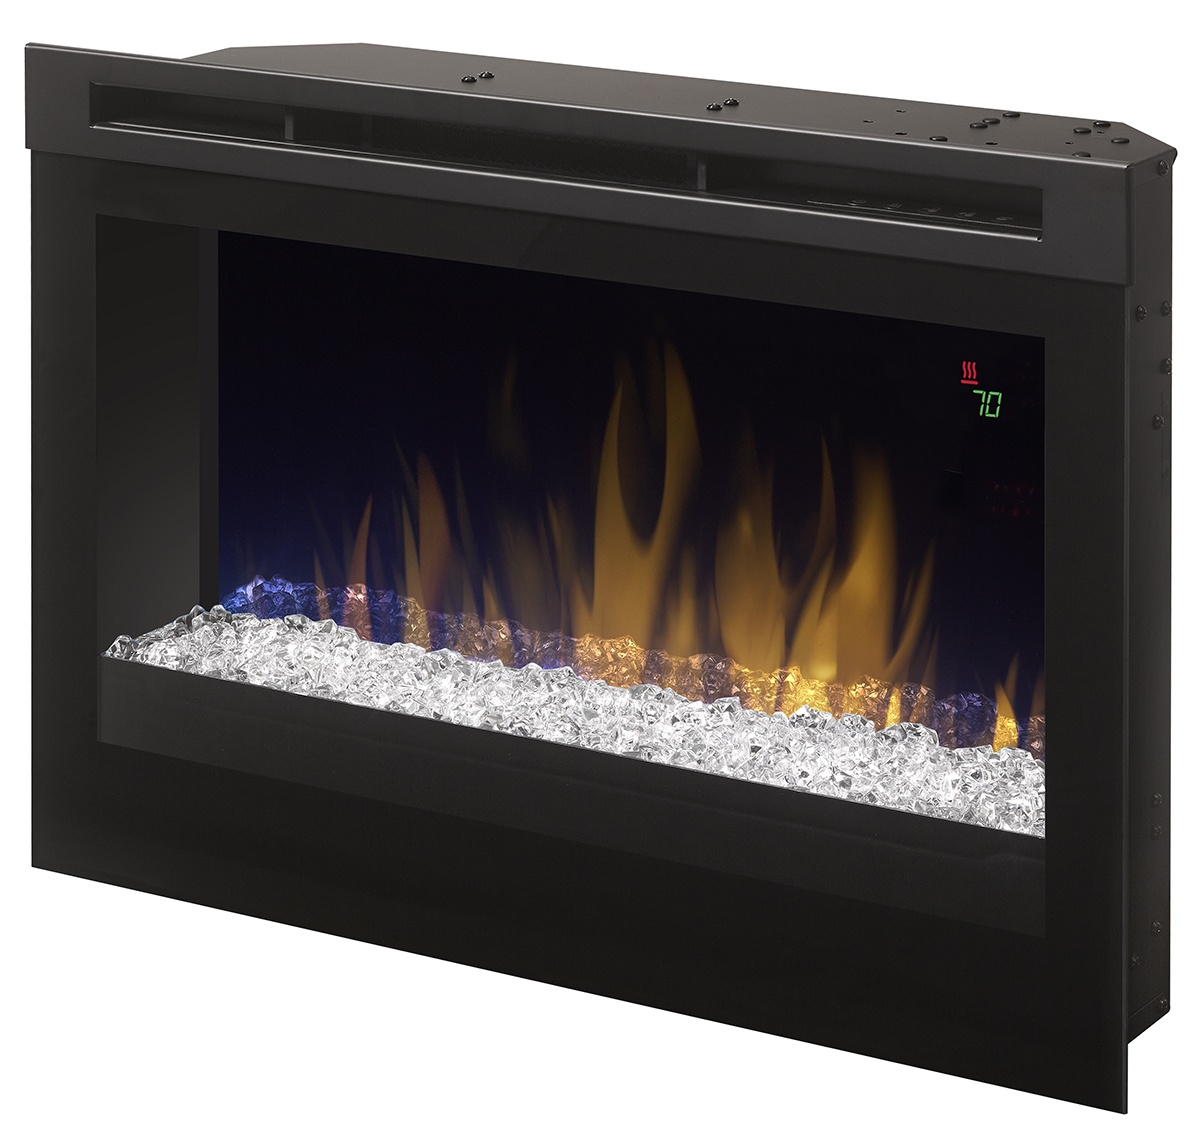 Dimplex 25 Dfr G Electric Fireplace Insert